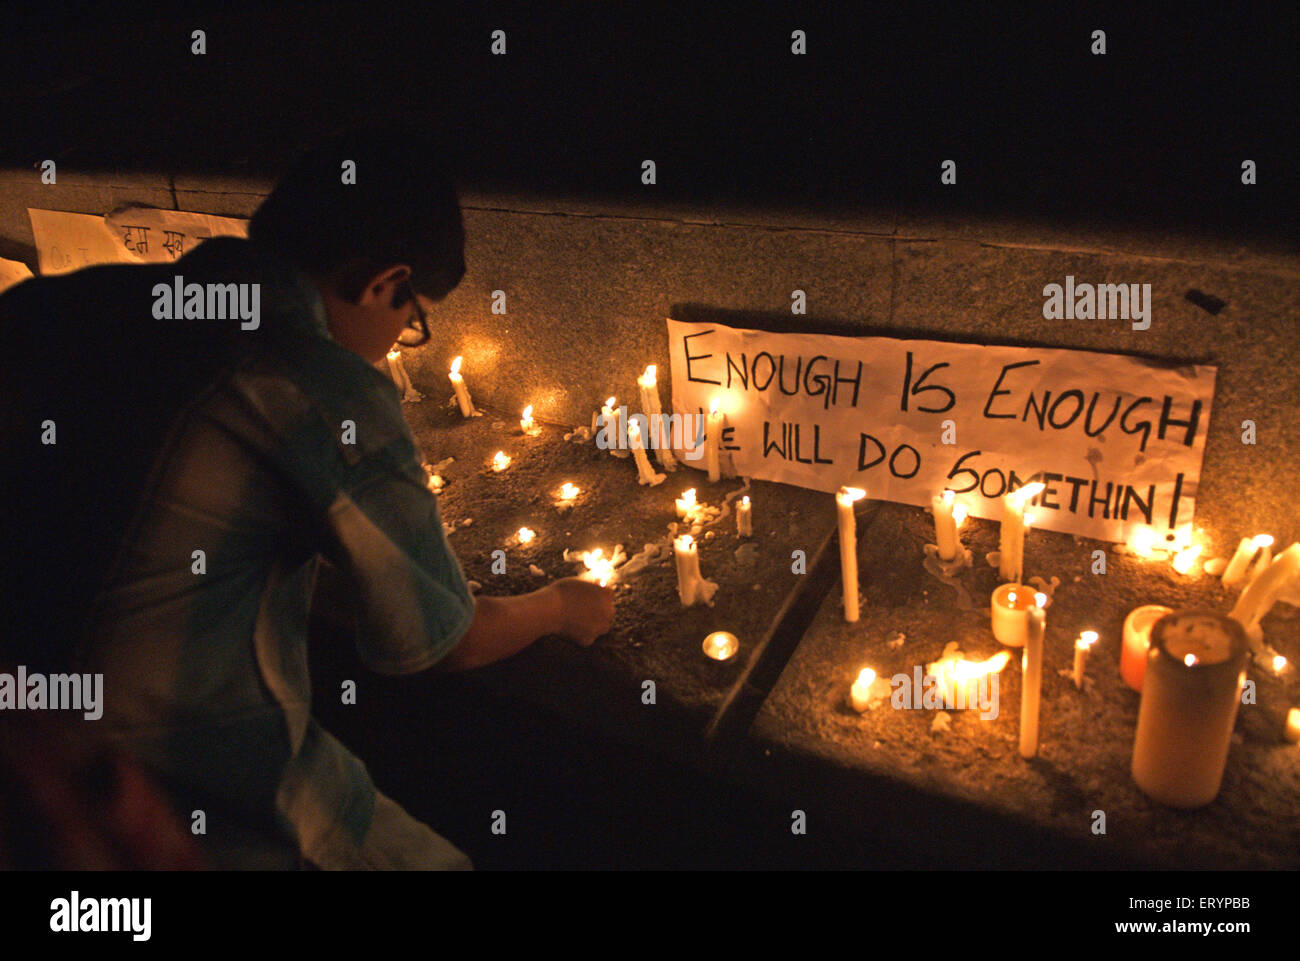 Offering condolences to terror attack victims by lighting candles and putting message across Bombay - Stock Image